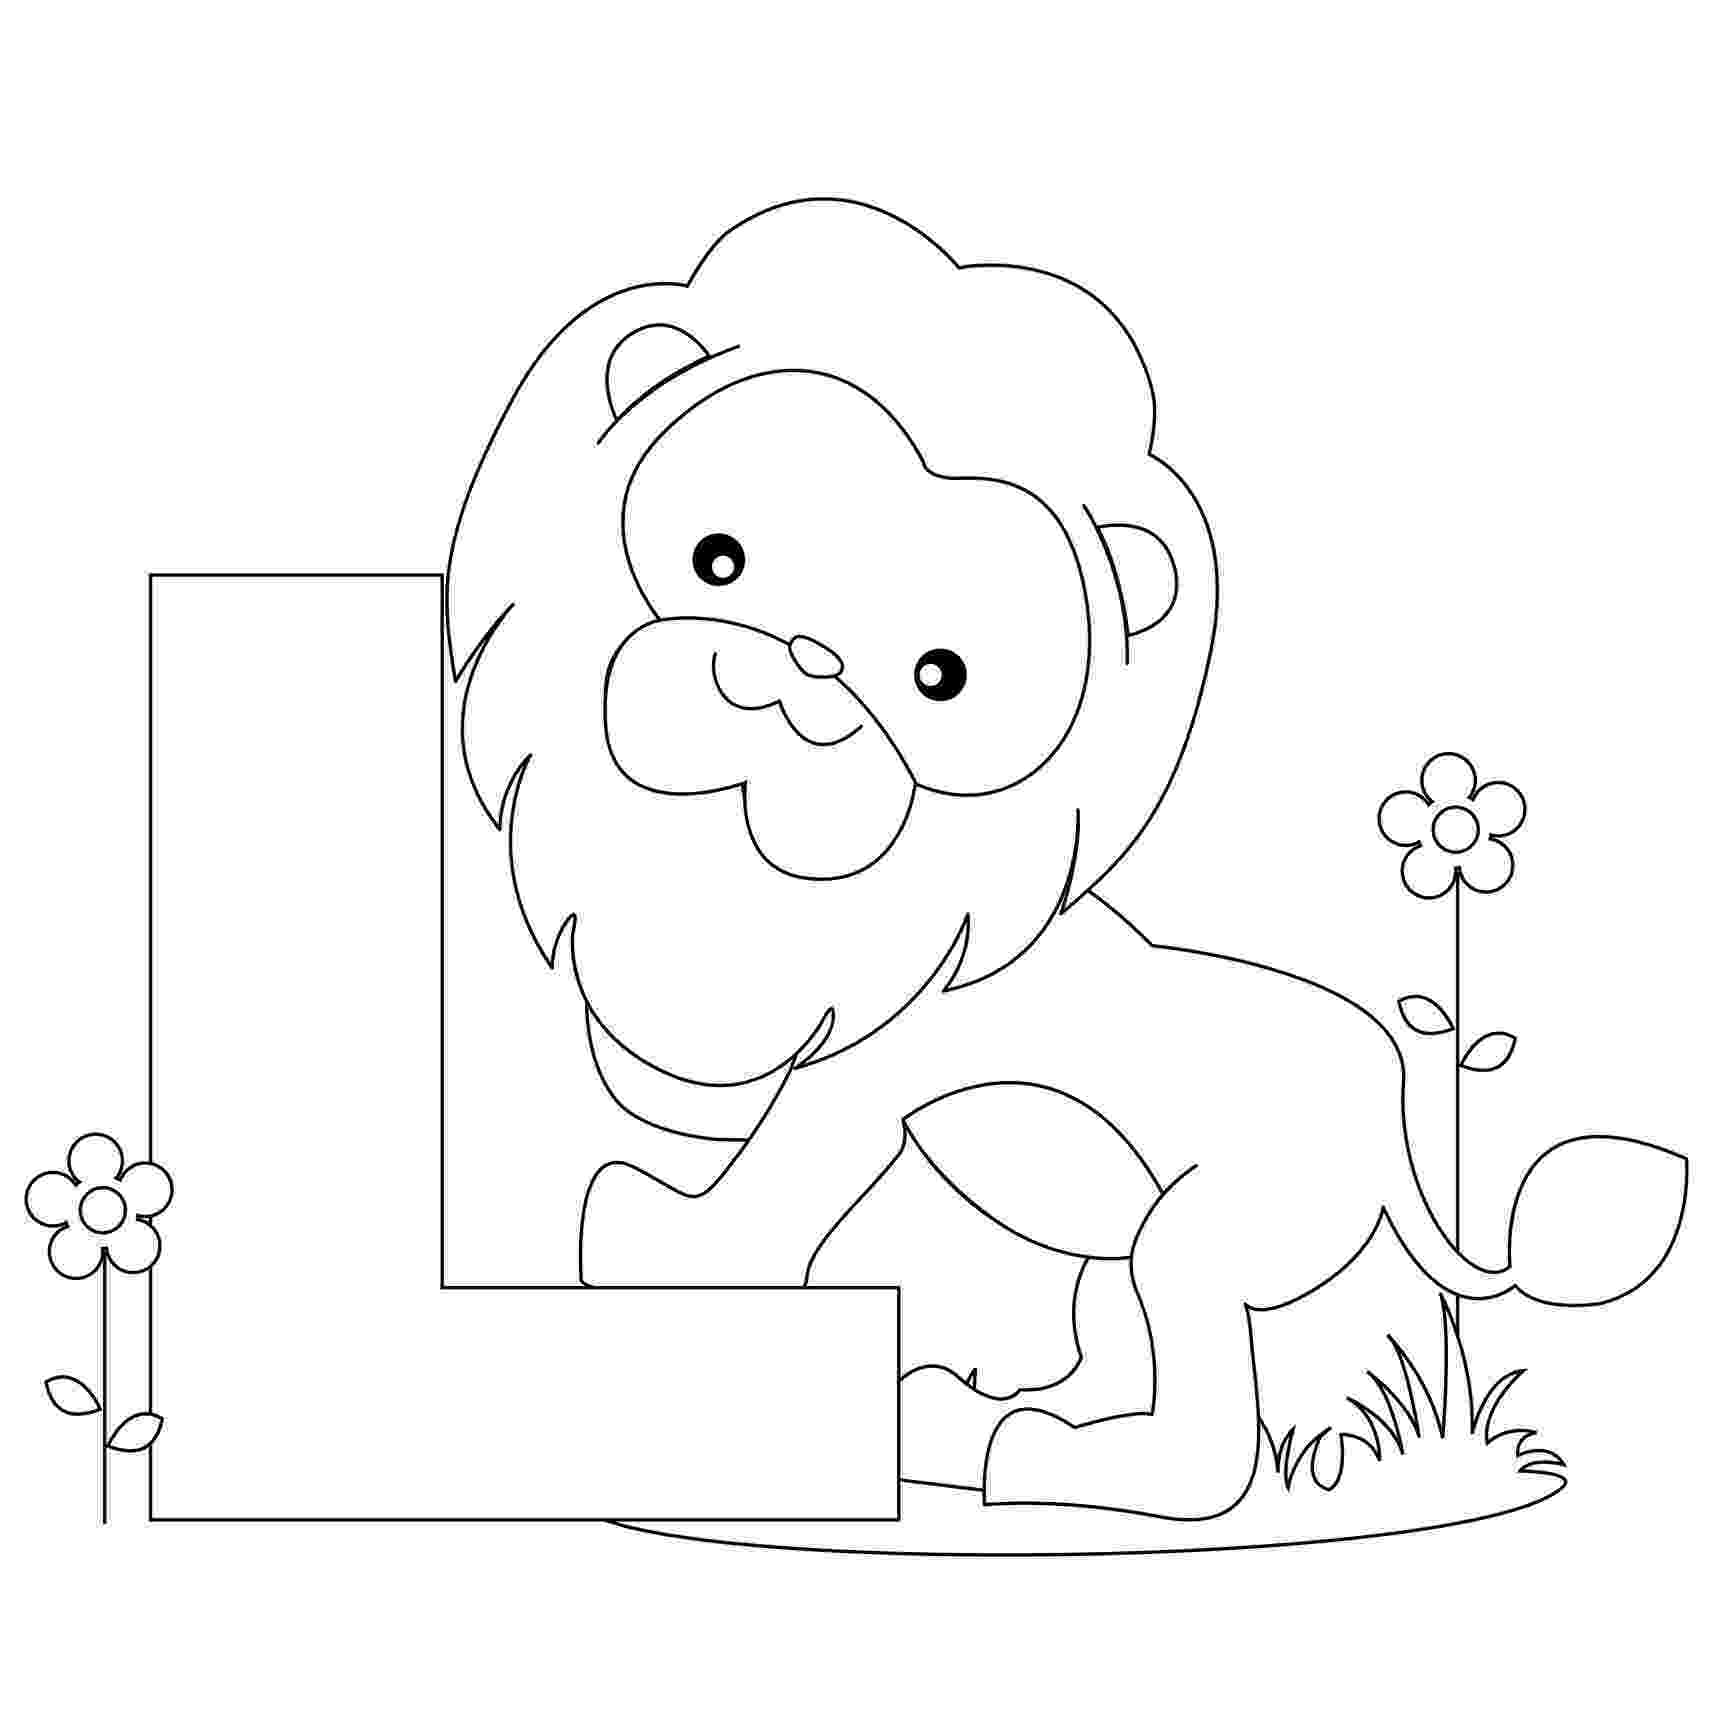 alphabet coloring free printable alphabet coloring pages for kids best coloring alphabet 1 1